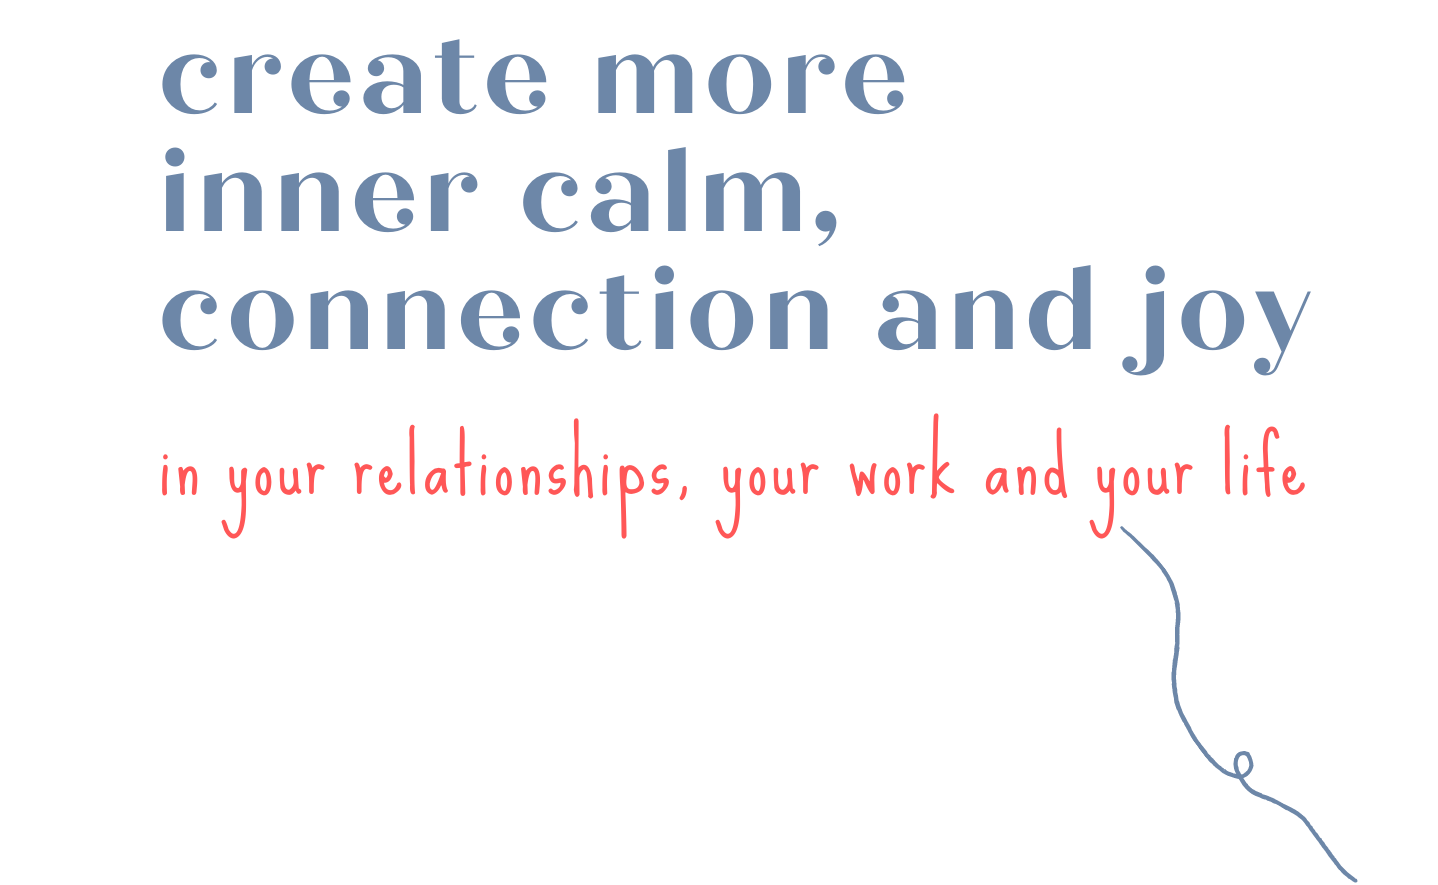 Create more inner calm, connection and joy